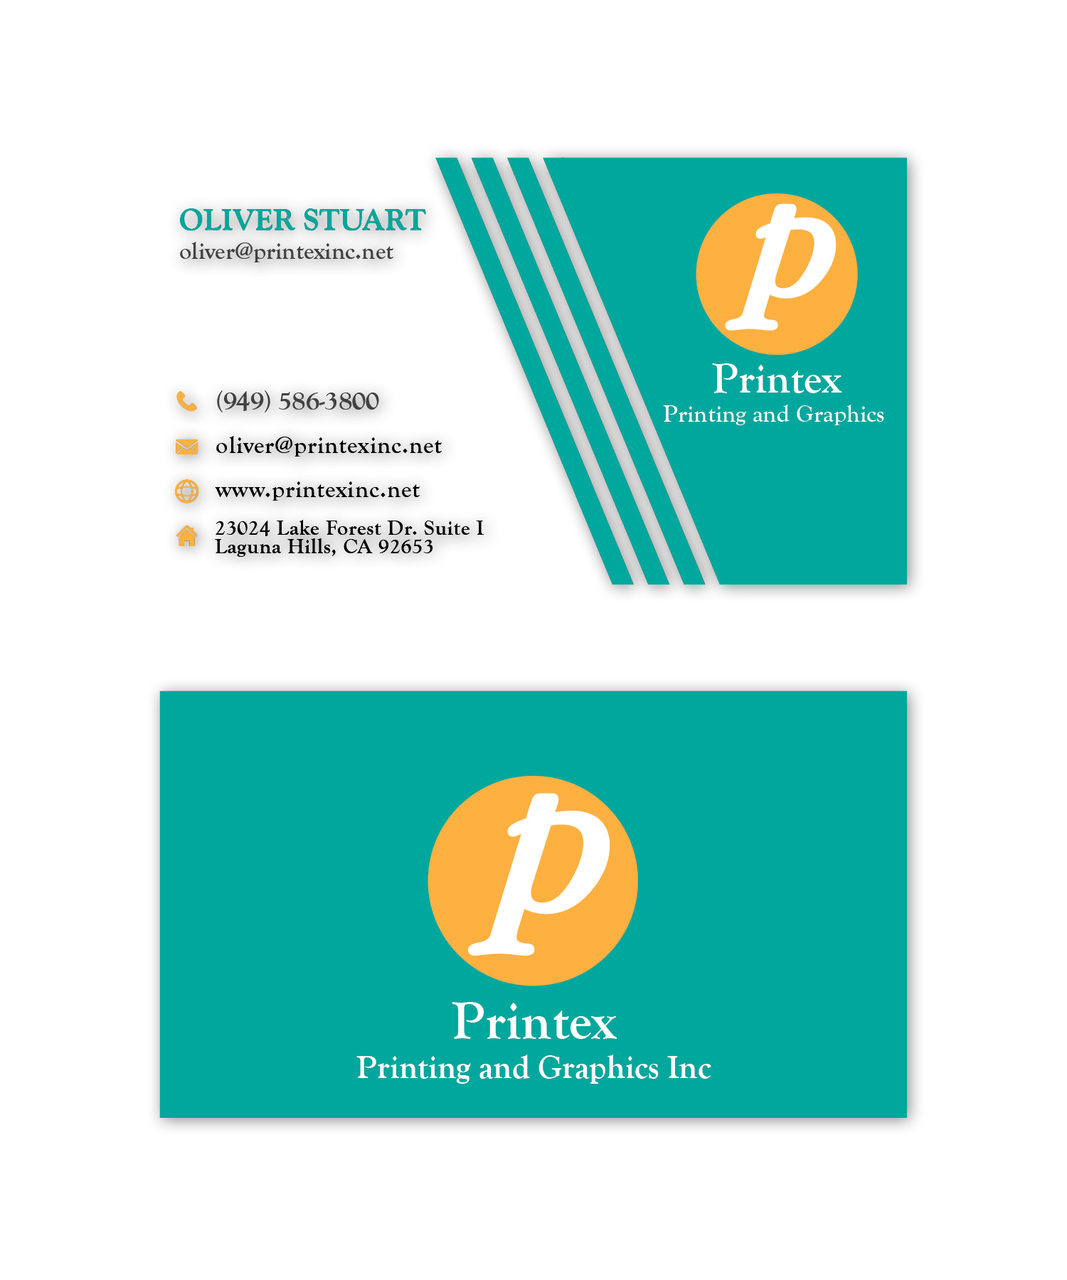 Business cards printex printing and graphics inc printex printing and graphics business cards reheart Images